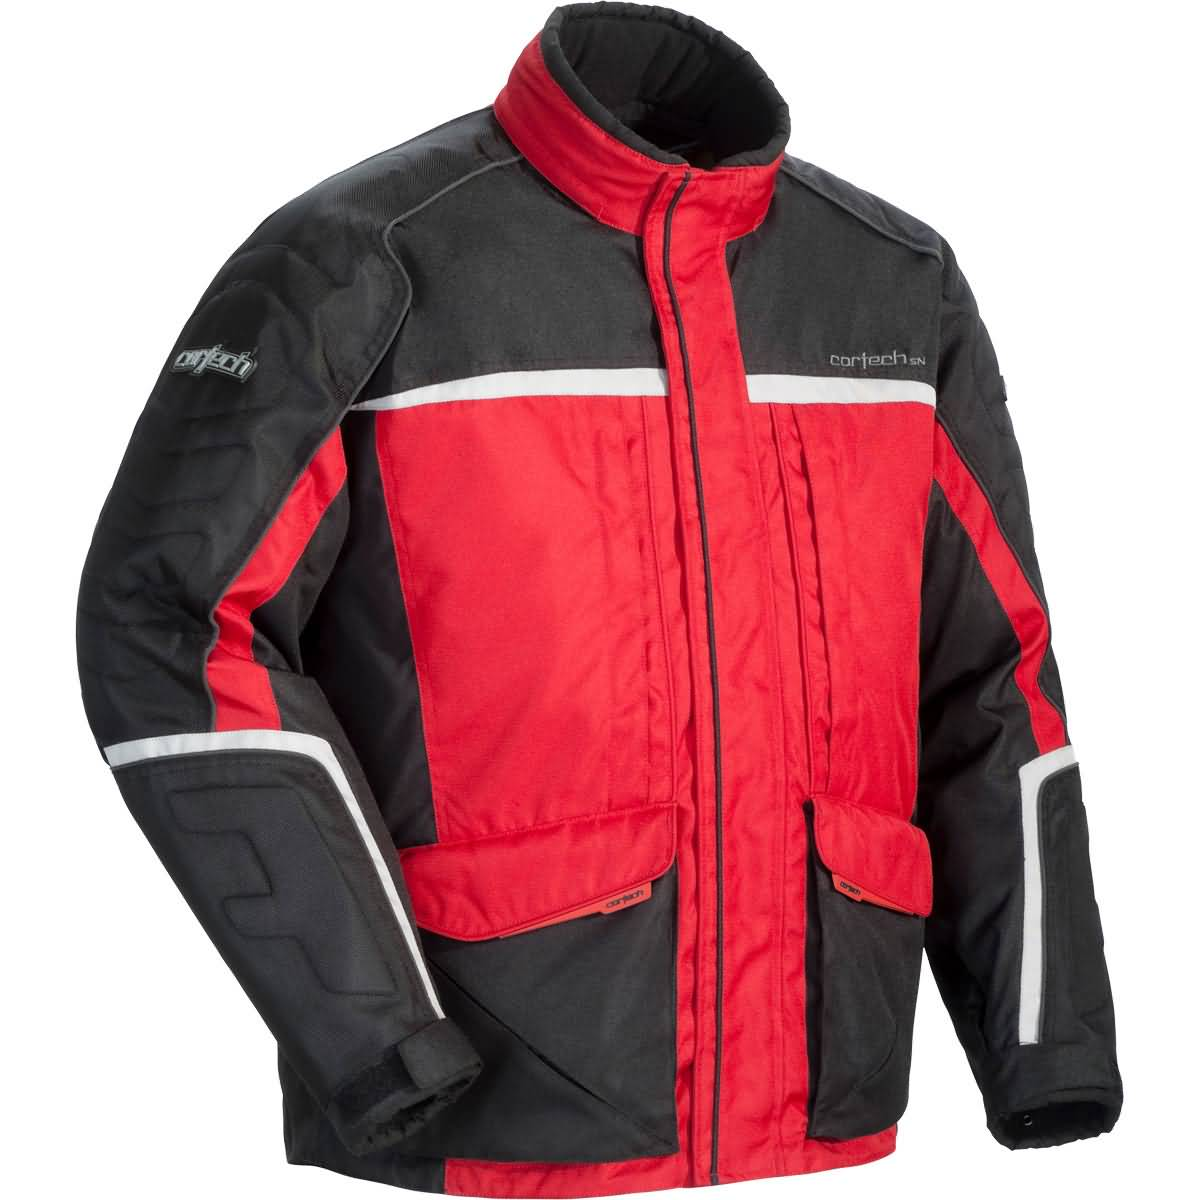 Cortech Cascade 2.0 Men's Snow Jackets - Red/Black/Silver